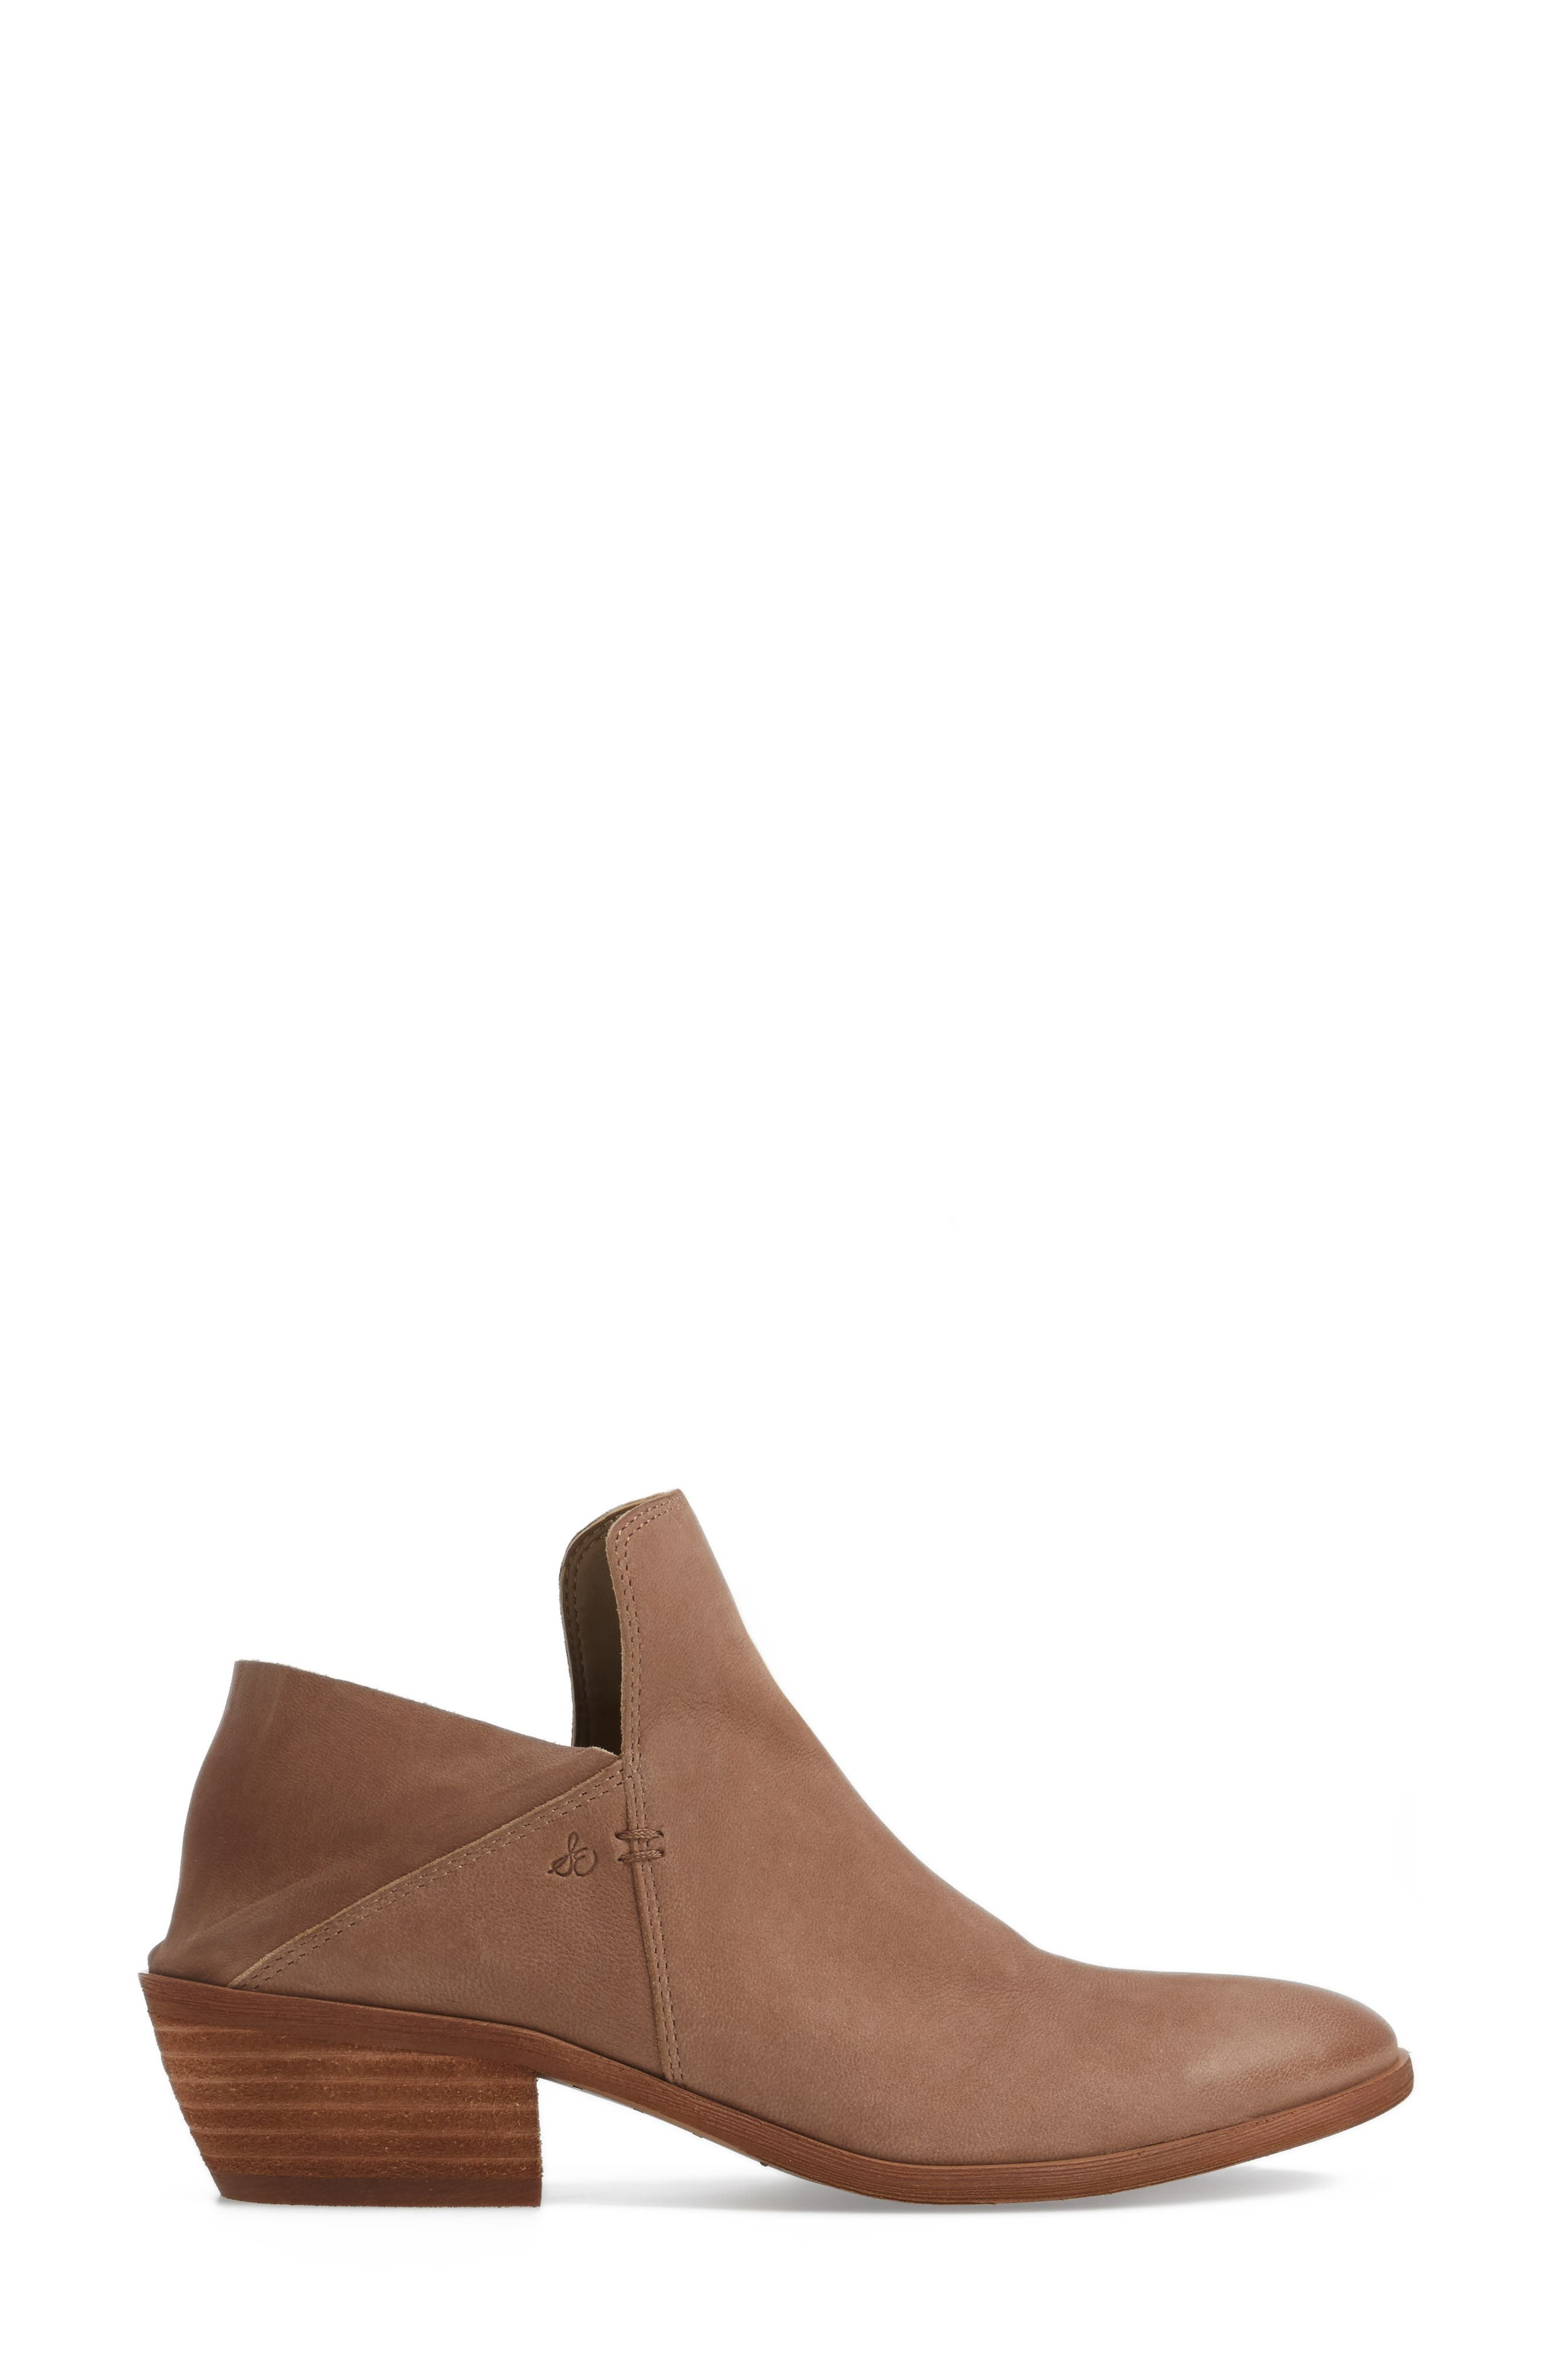 Prentice Convertible Ankle Boot,                             Alternate thumbnail 7, color,